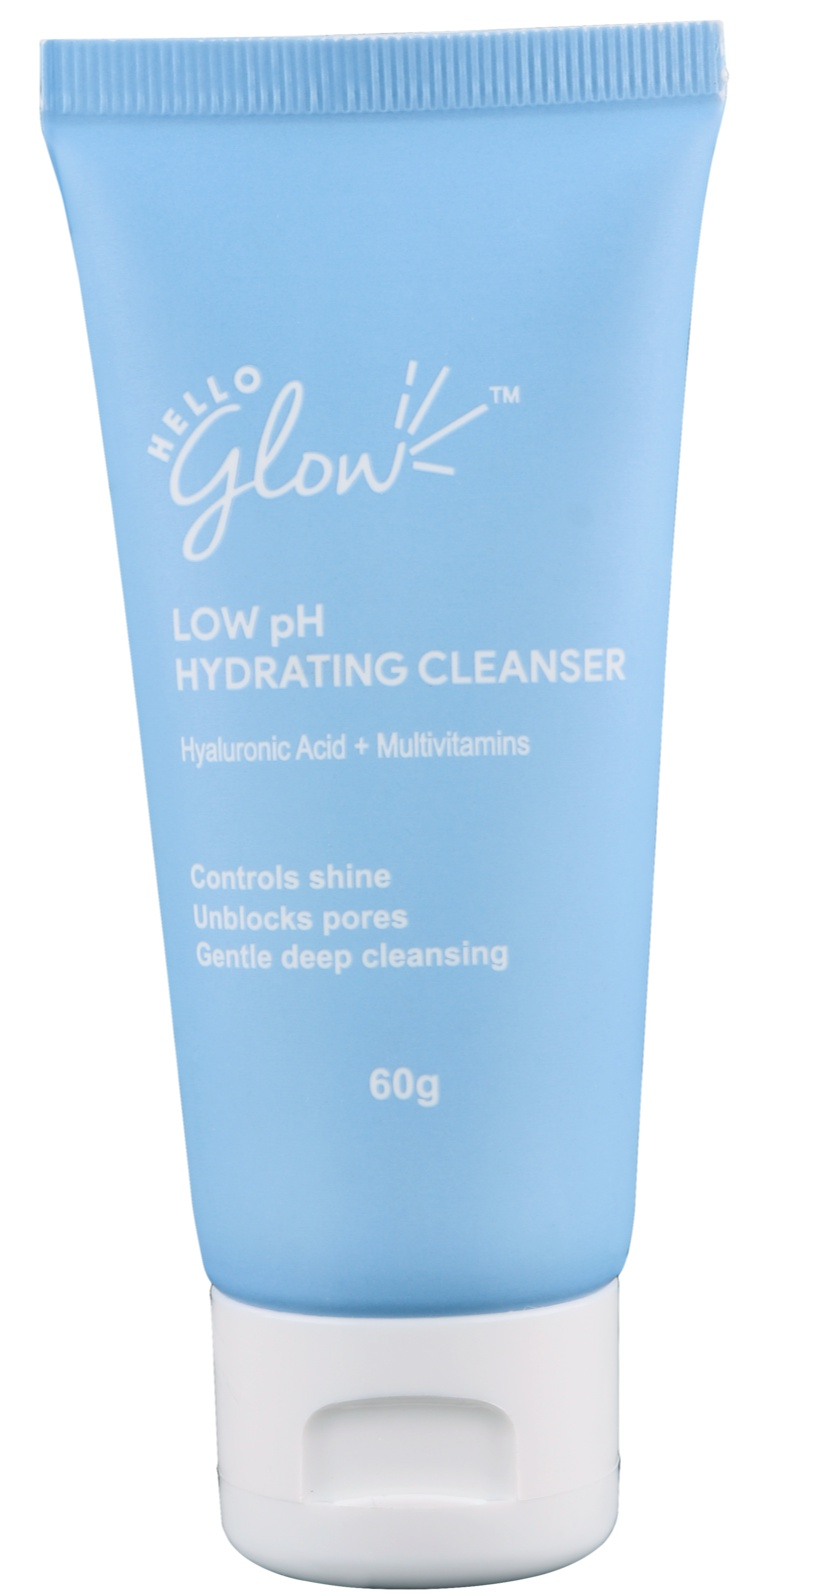 Hello Glow Low pH Hydrating Cleanser